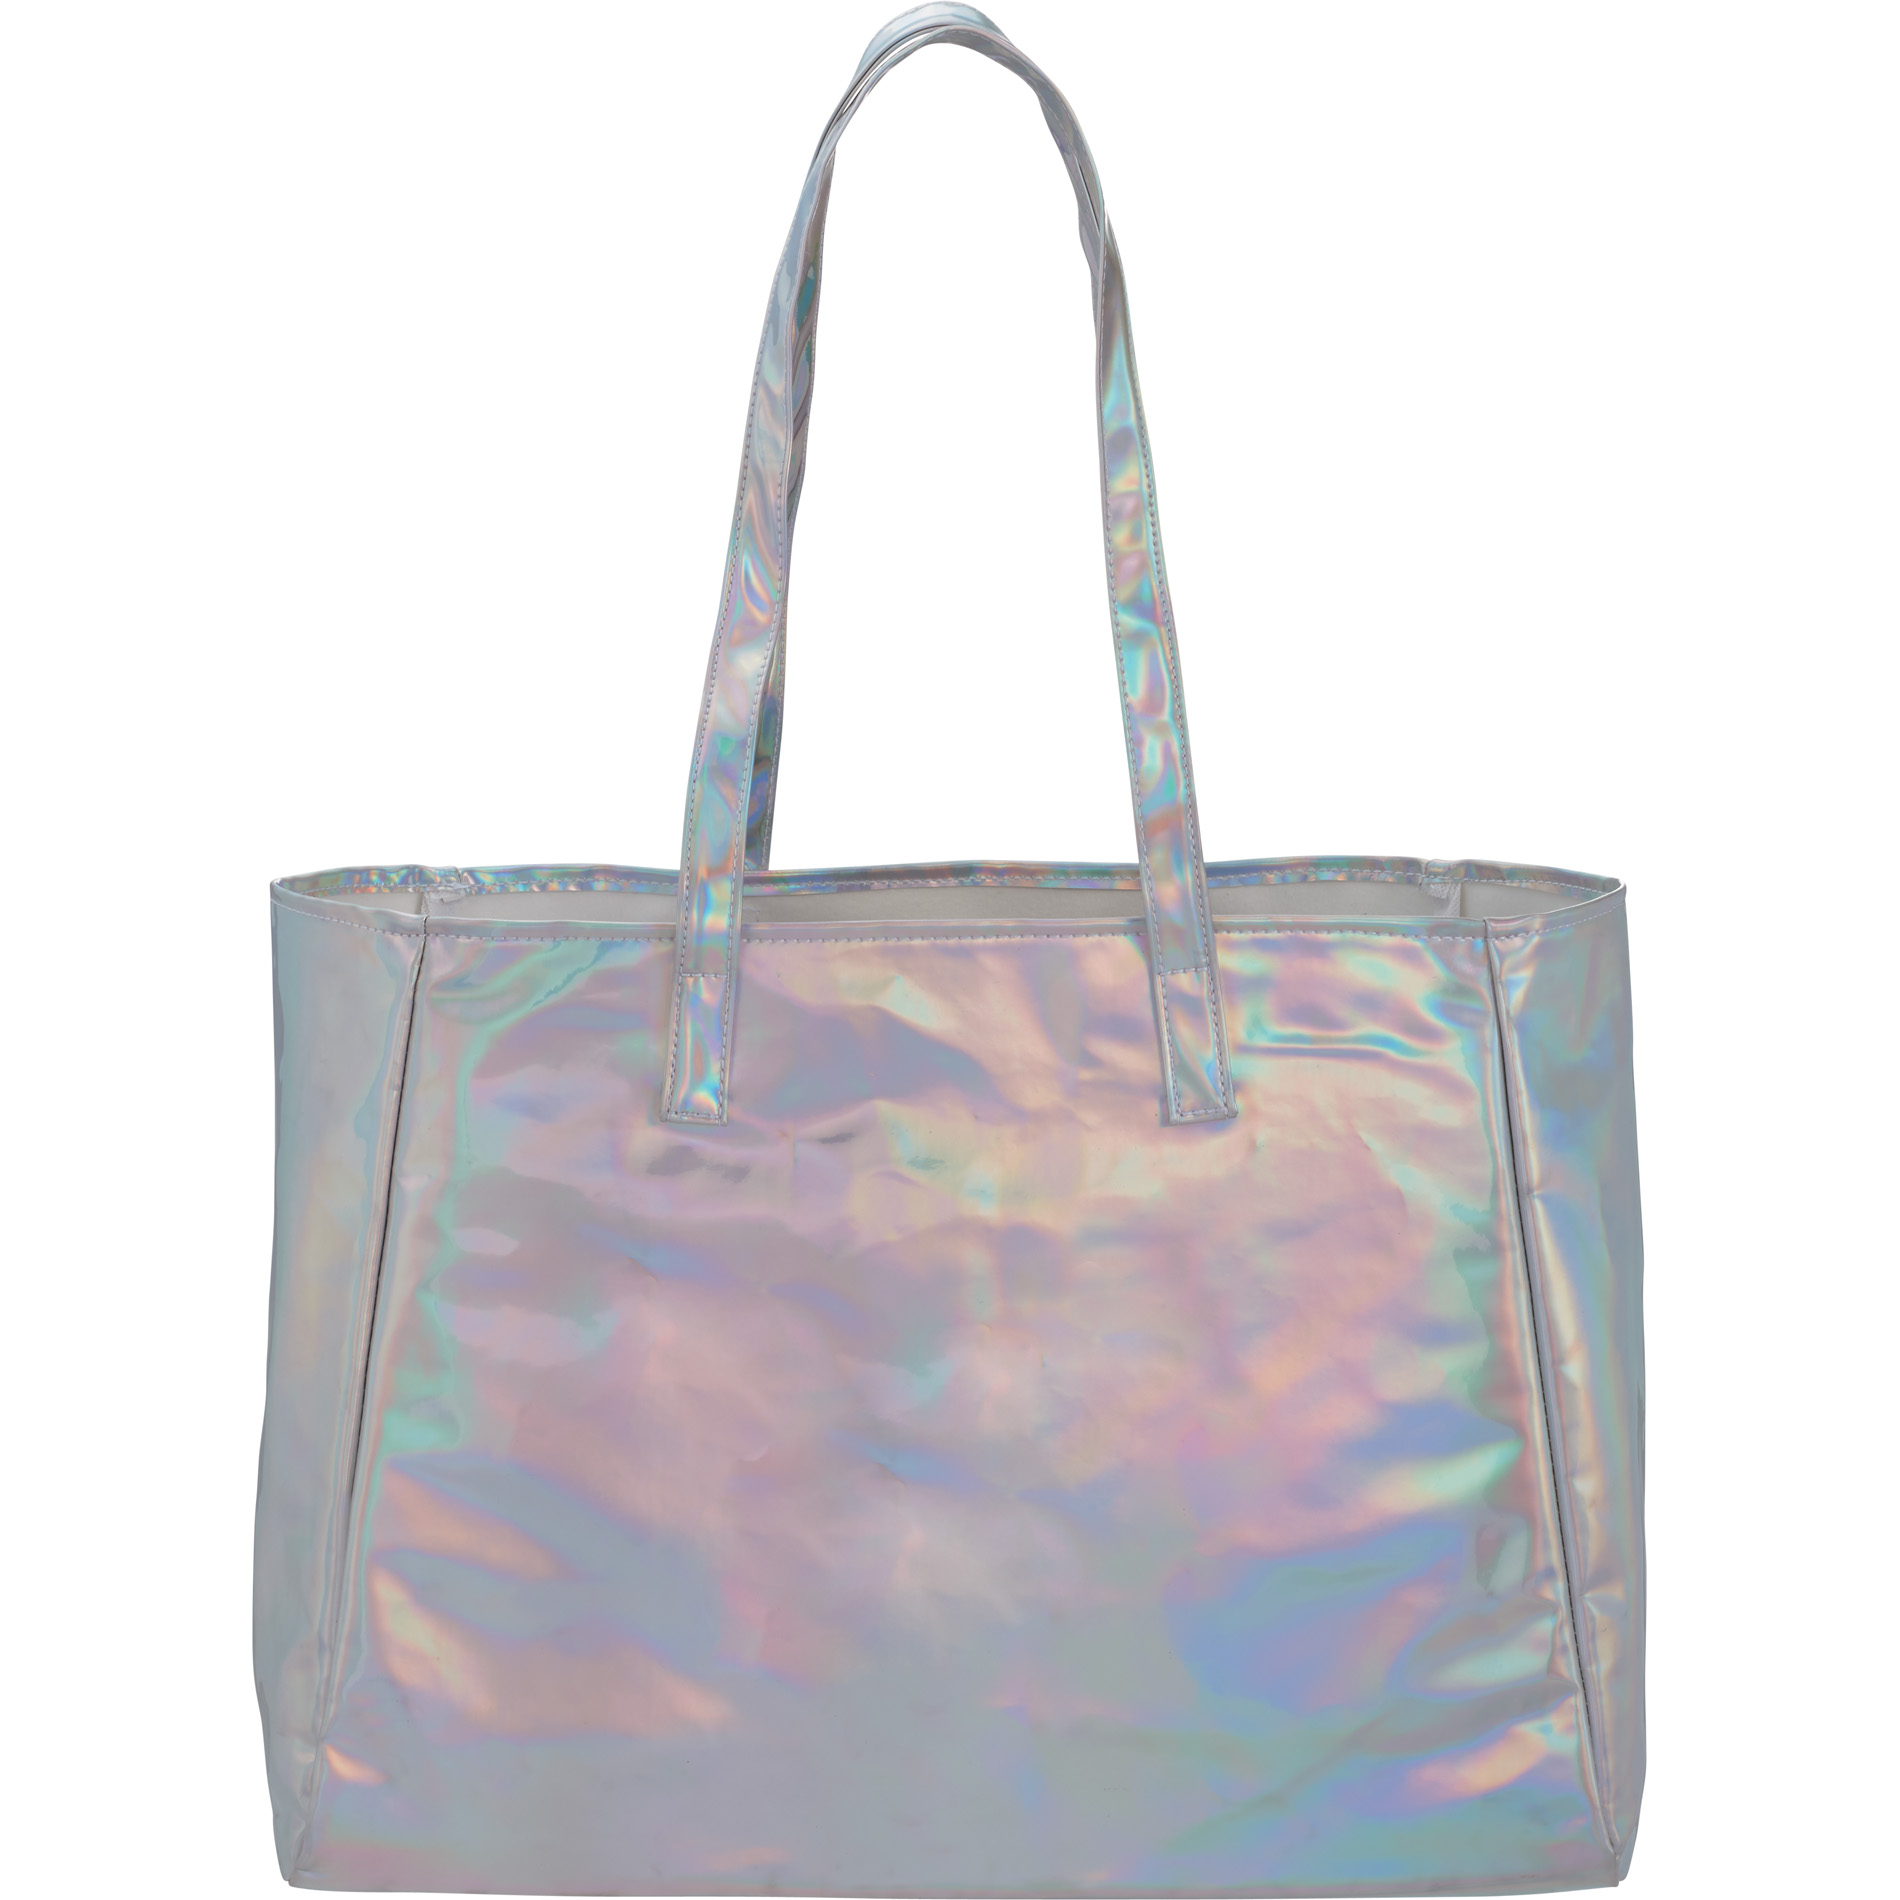 LEEDS 2190-10 - Holographic Shopper Tote